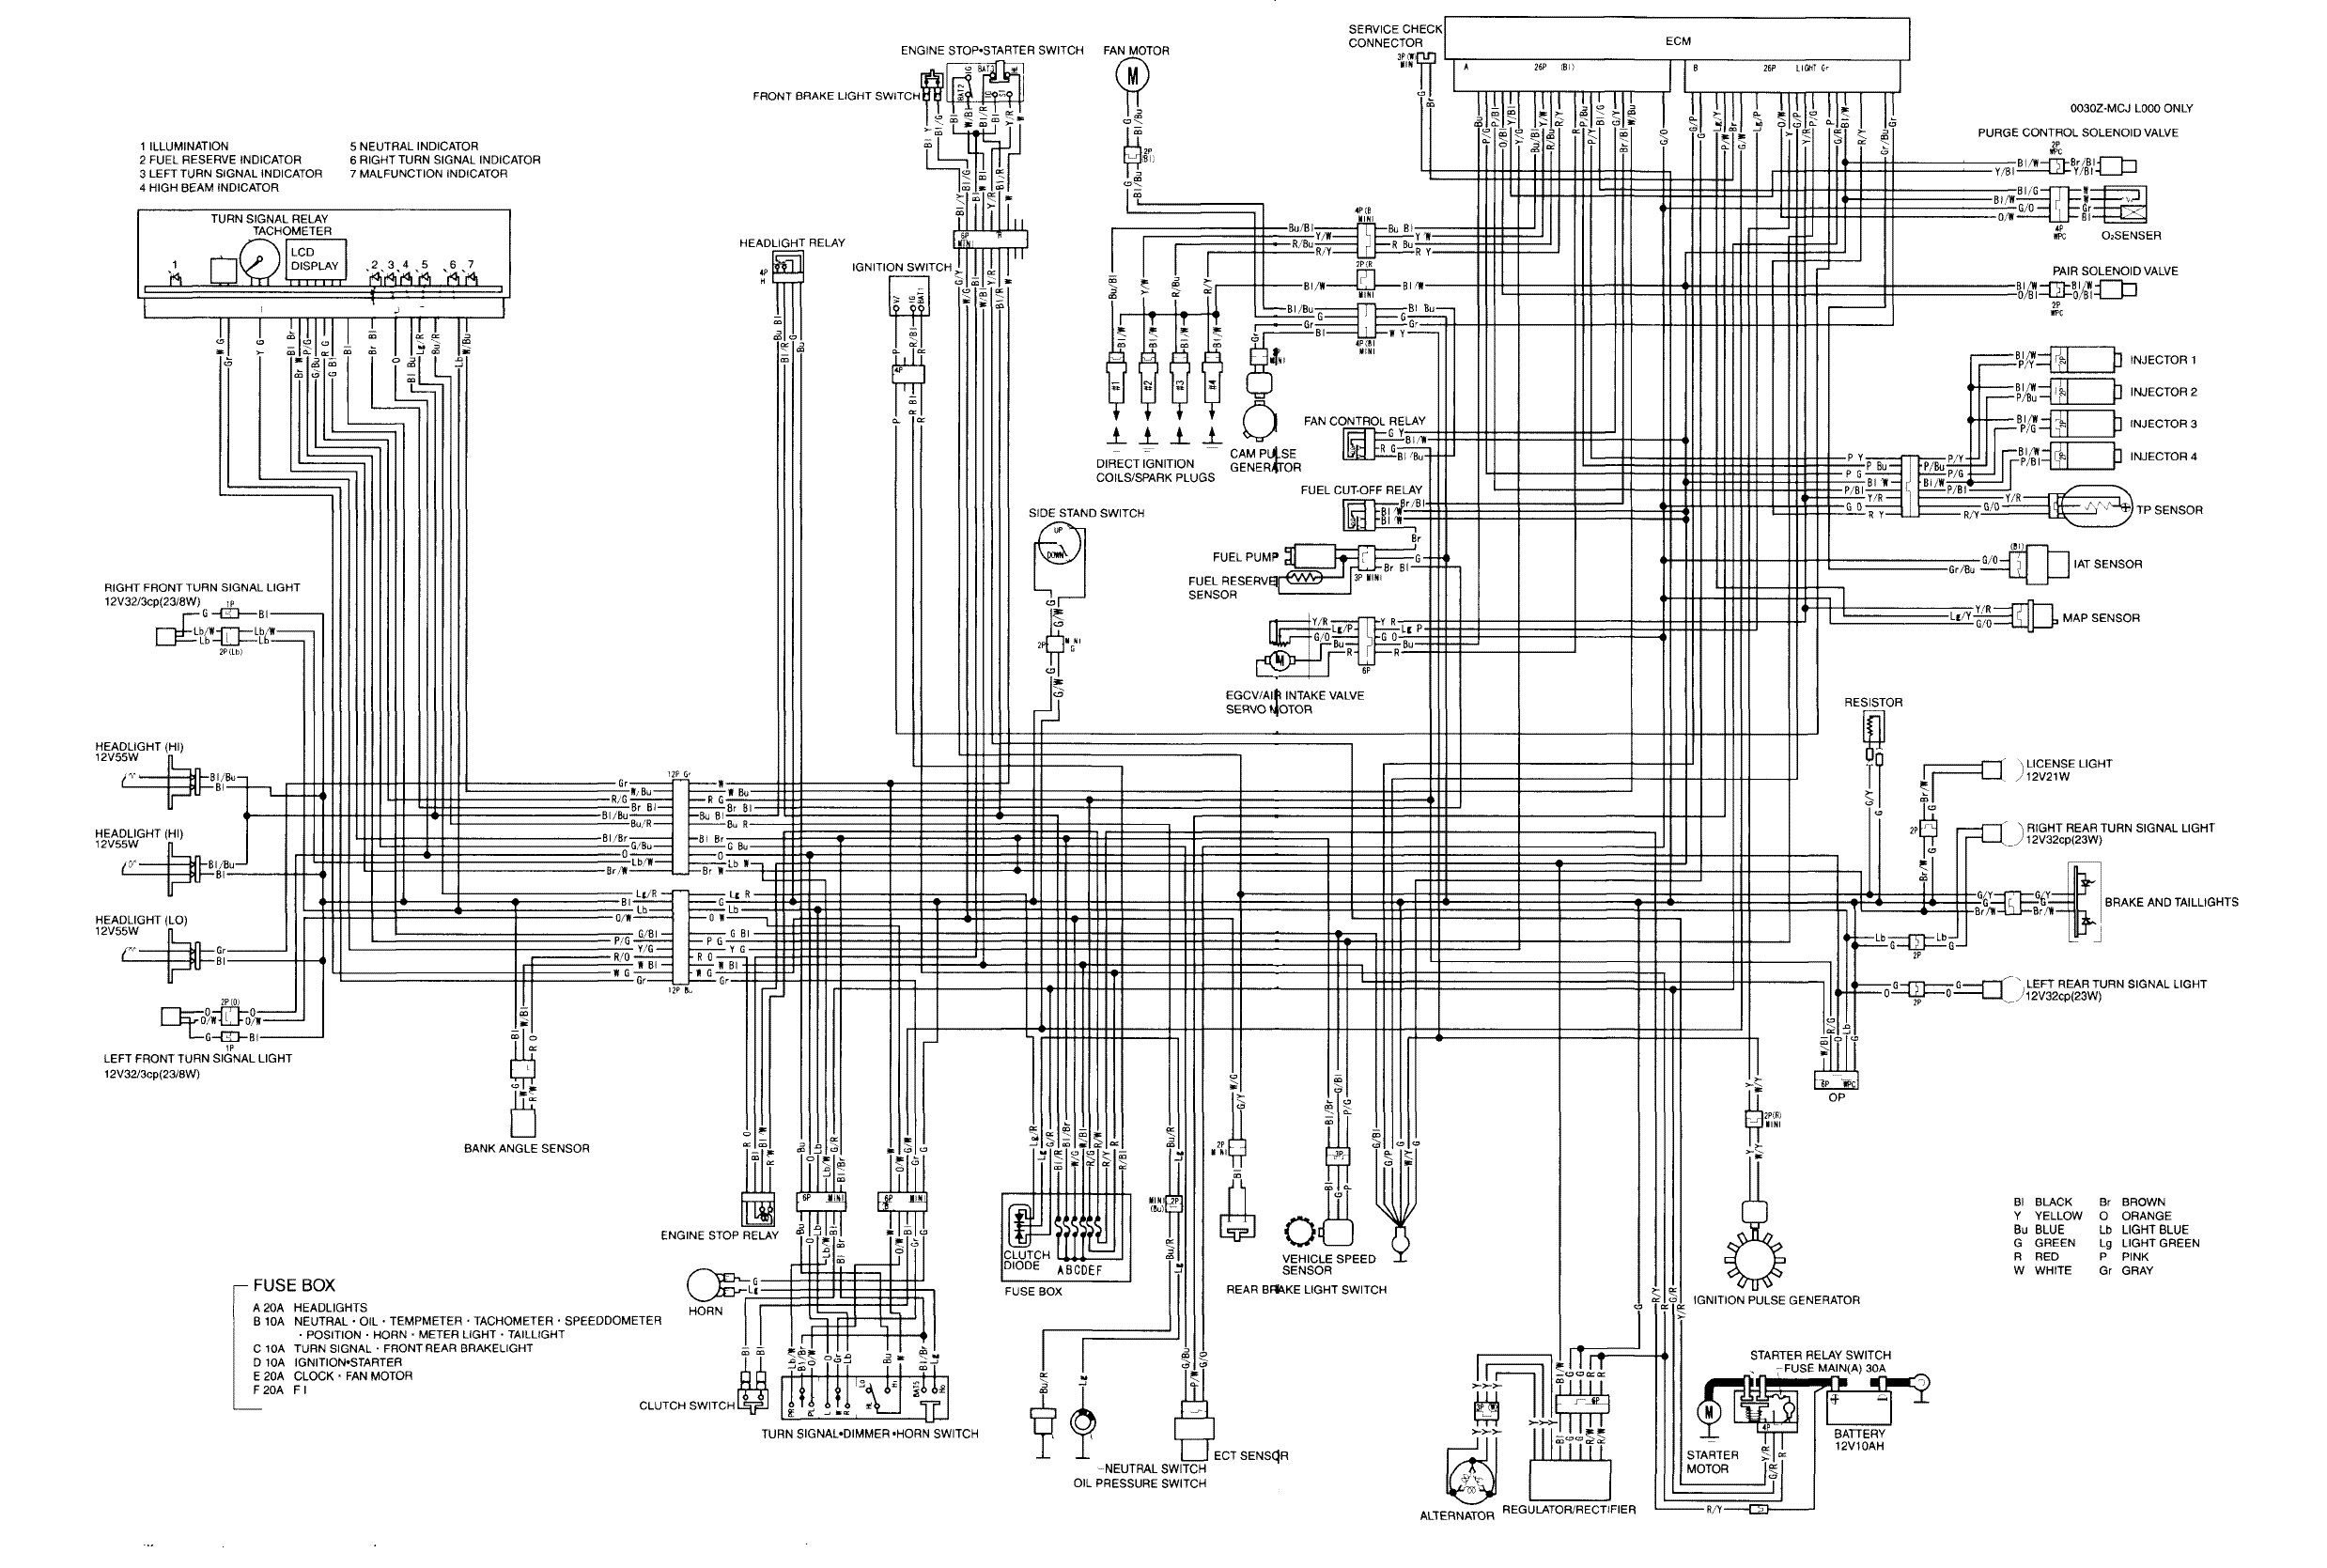 wiring diagram for 5 pin din plug wiring diagrams and schematics 6 pin chis connector panel mount male and female prt